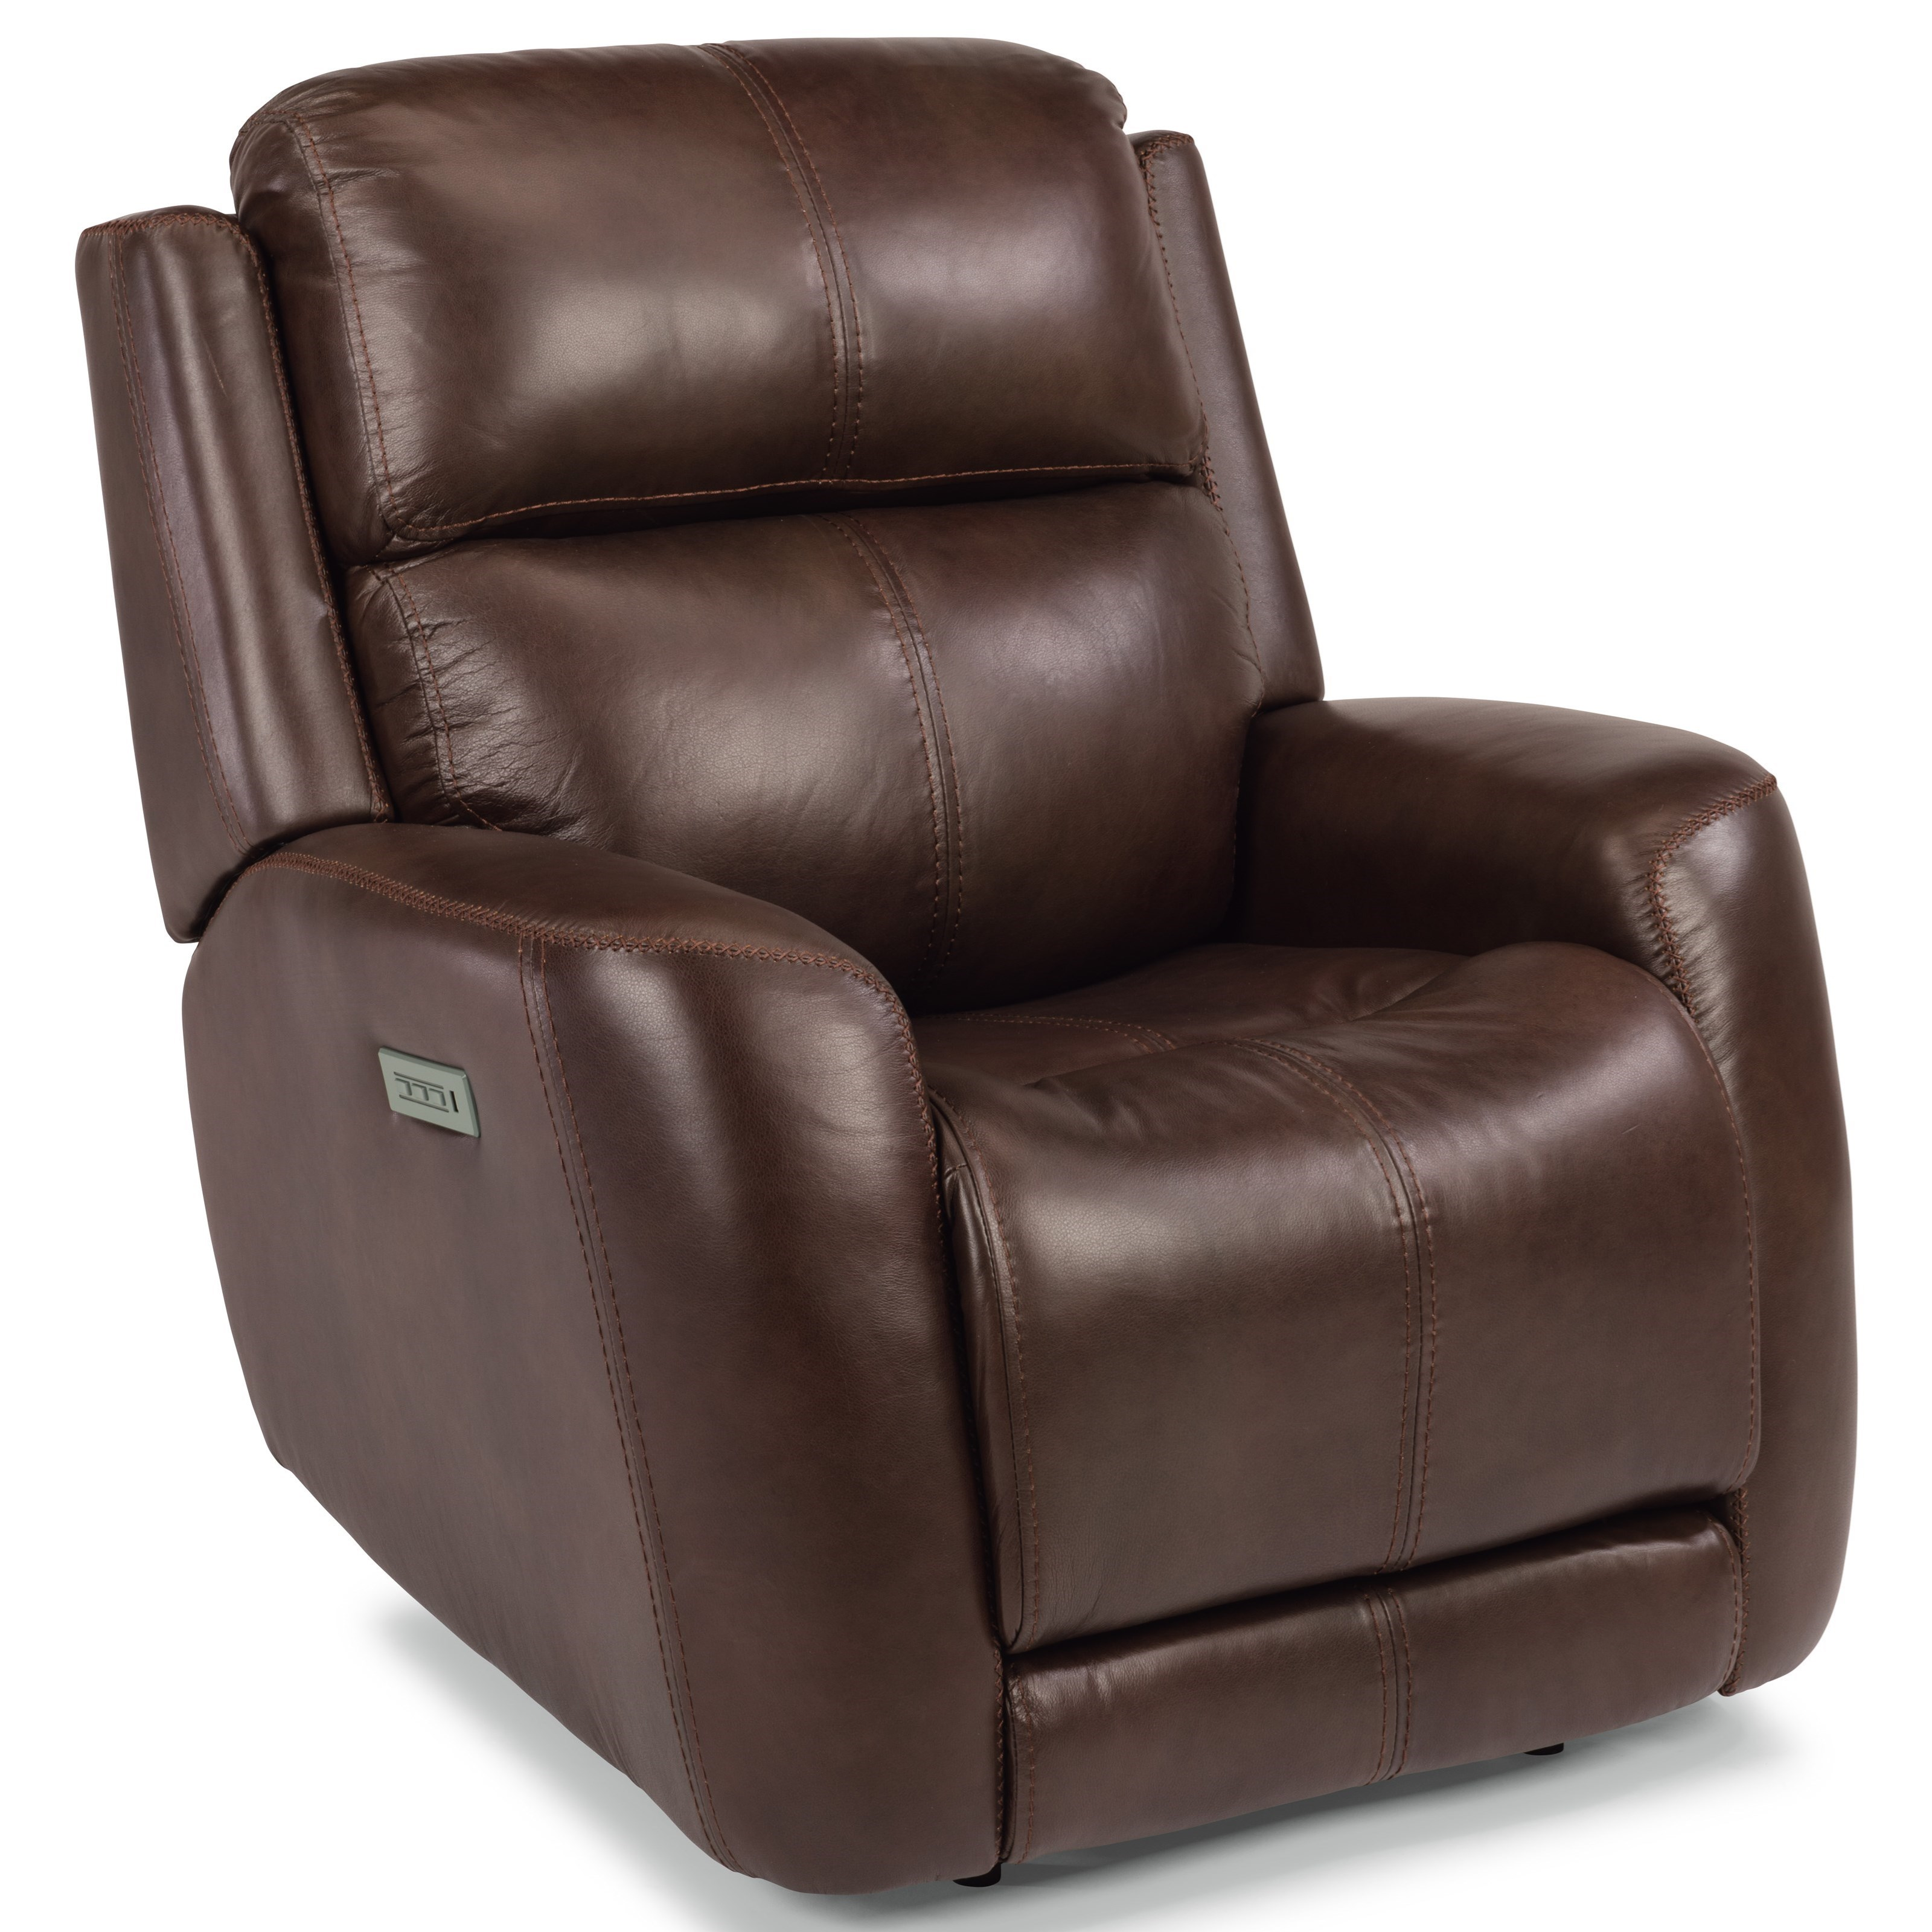 recliner high com a flexsteel recliners resolution share via image email f springfield download product